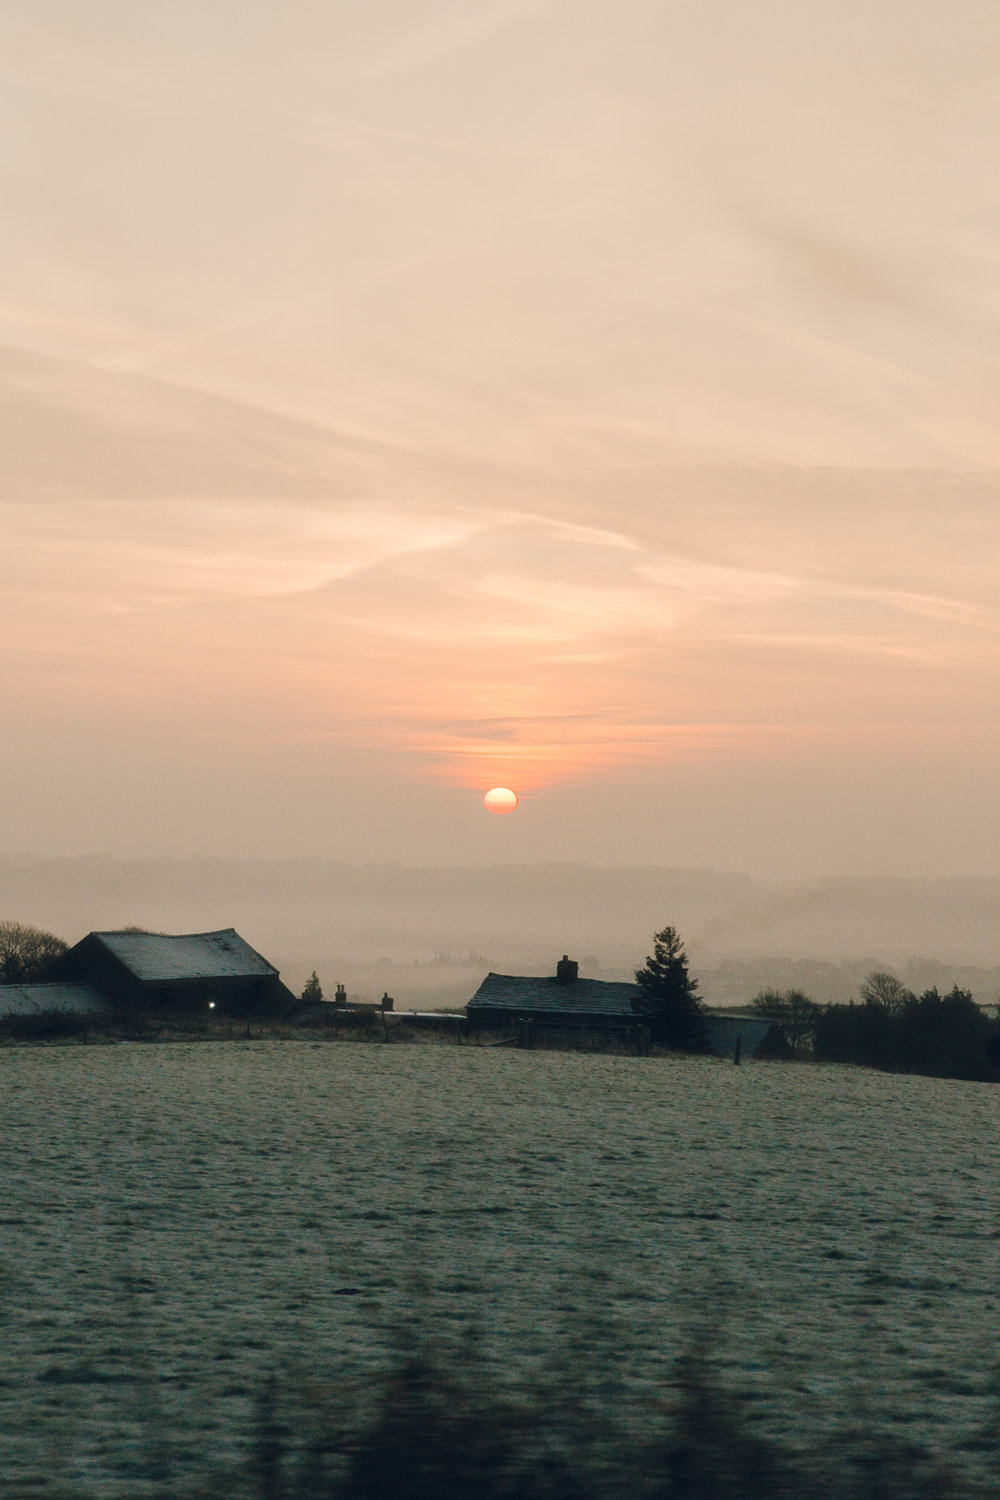 Sunrise over Derbyshire fields in the Winter.